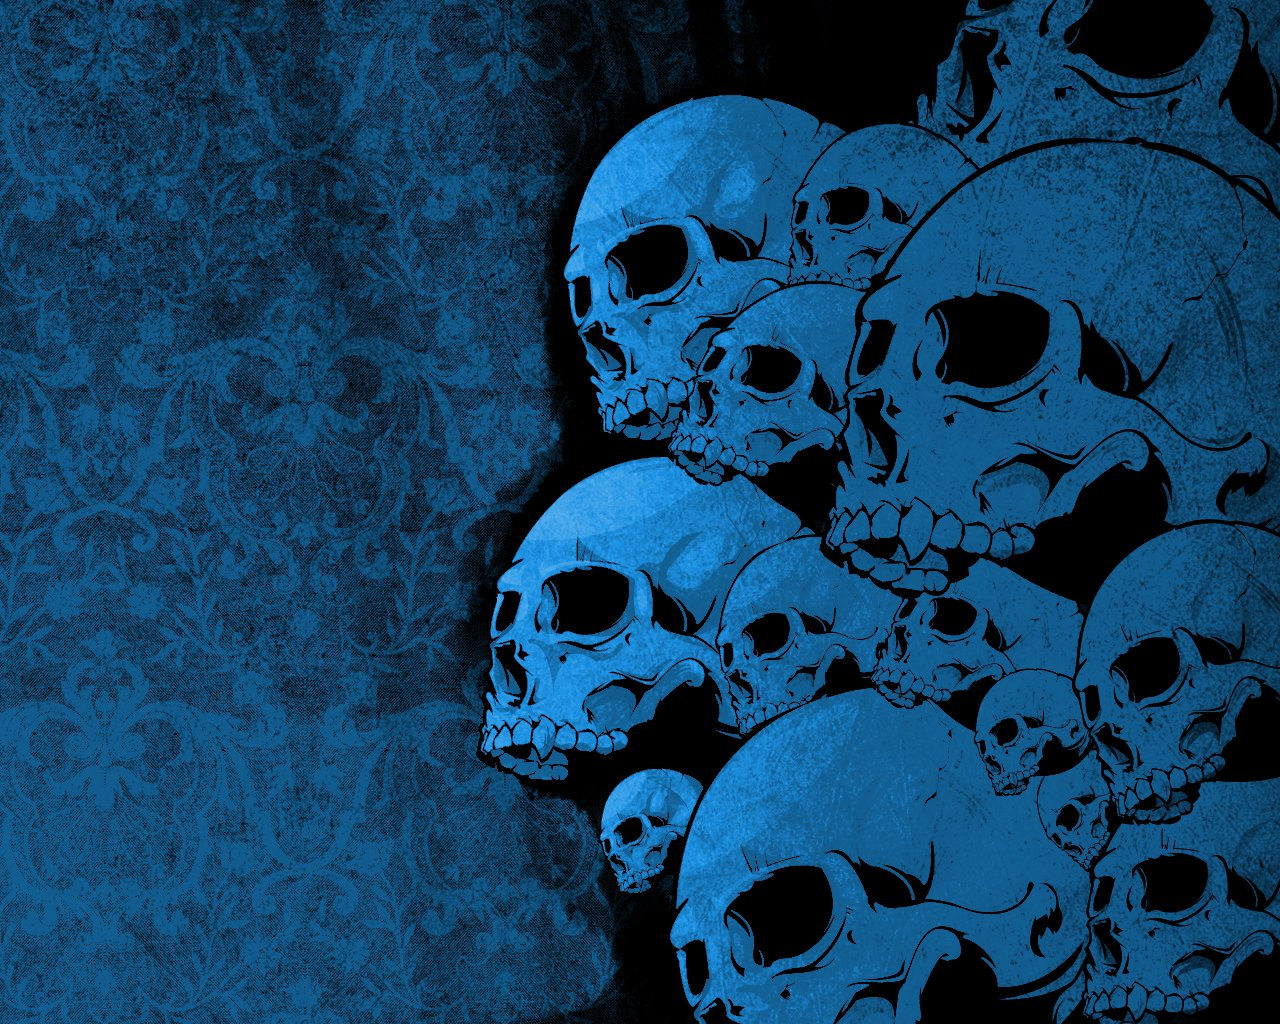 Skulls | Skulls Images, Pictures, Wallpapers on B.SCB Wallpapers